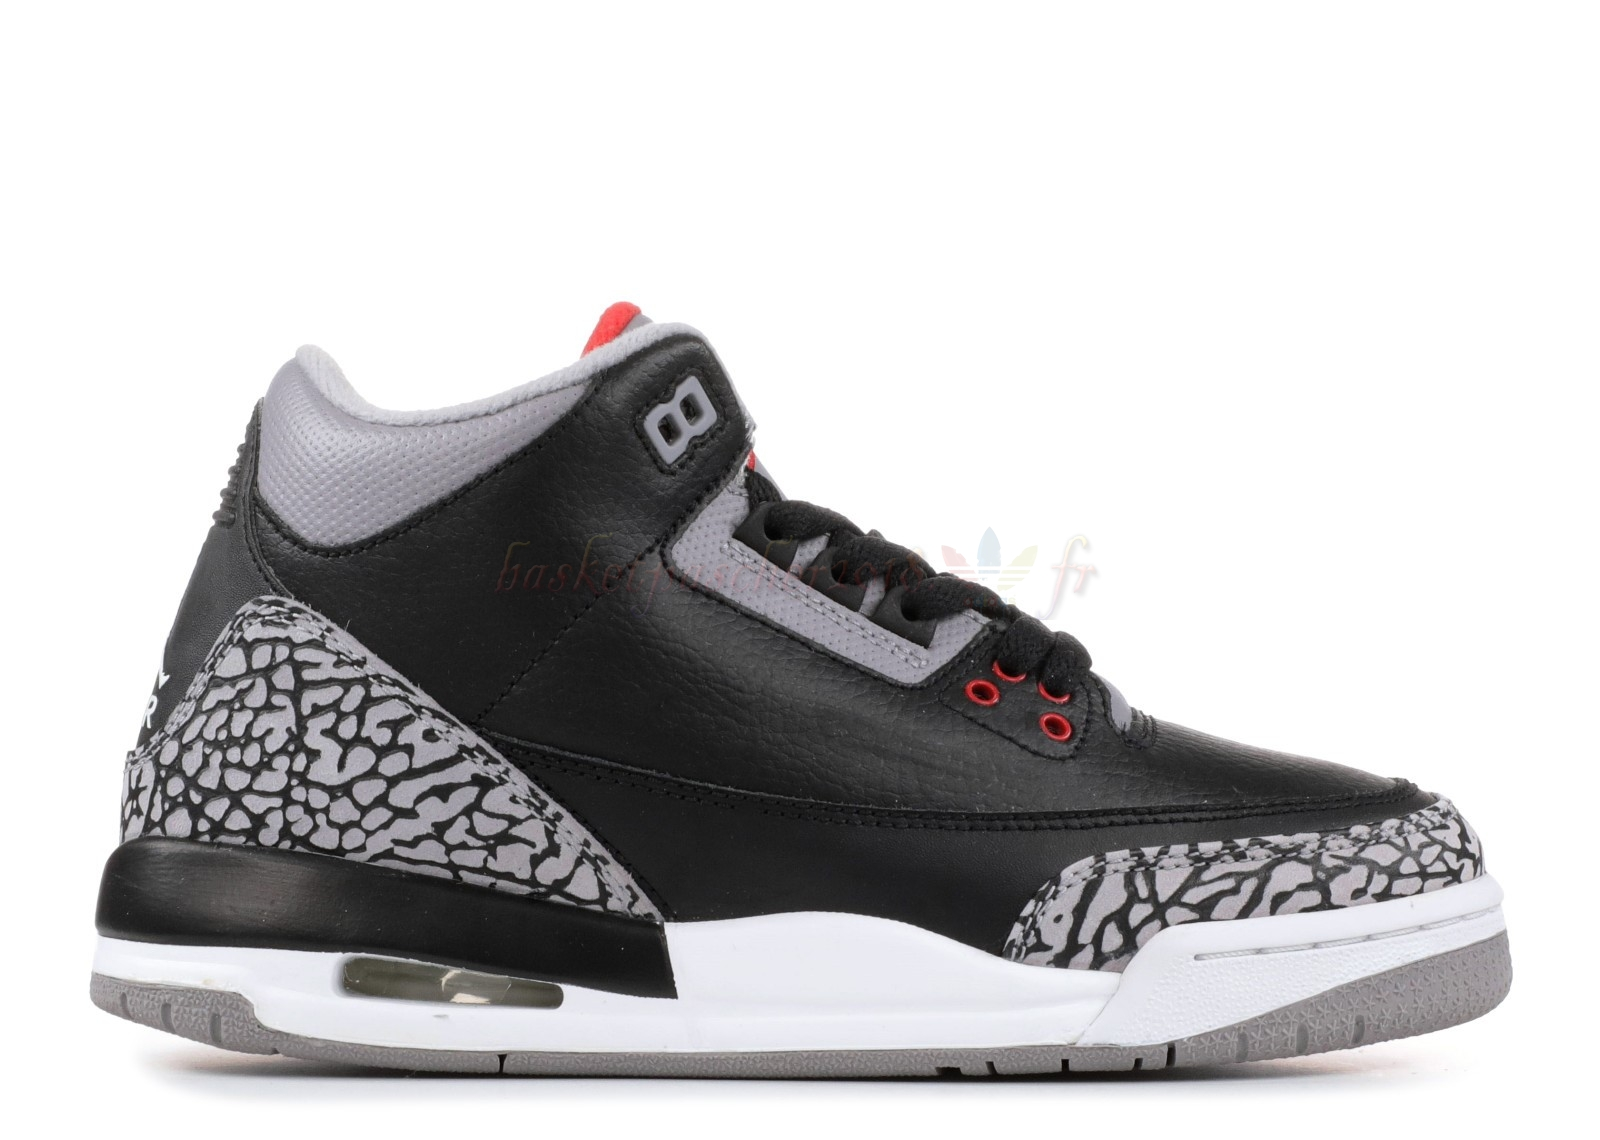 new collection new release wholesale price Vente Chaude Chaussures De Basketball Femme Air Jordan 3 ...